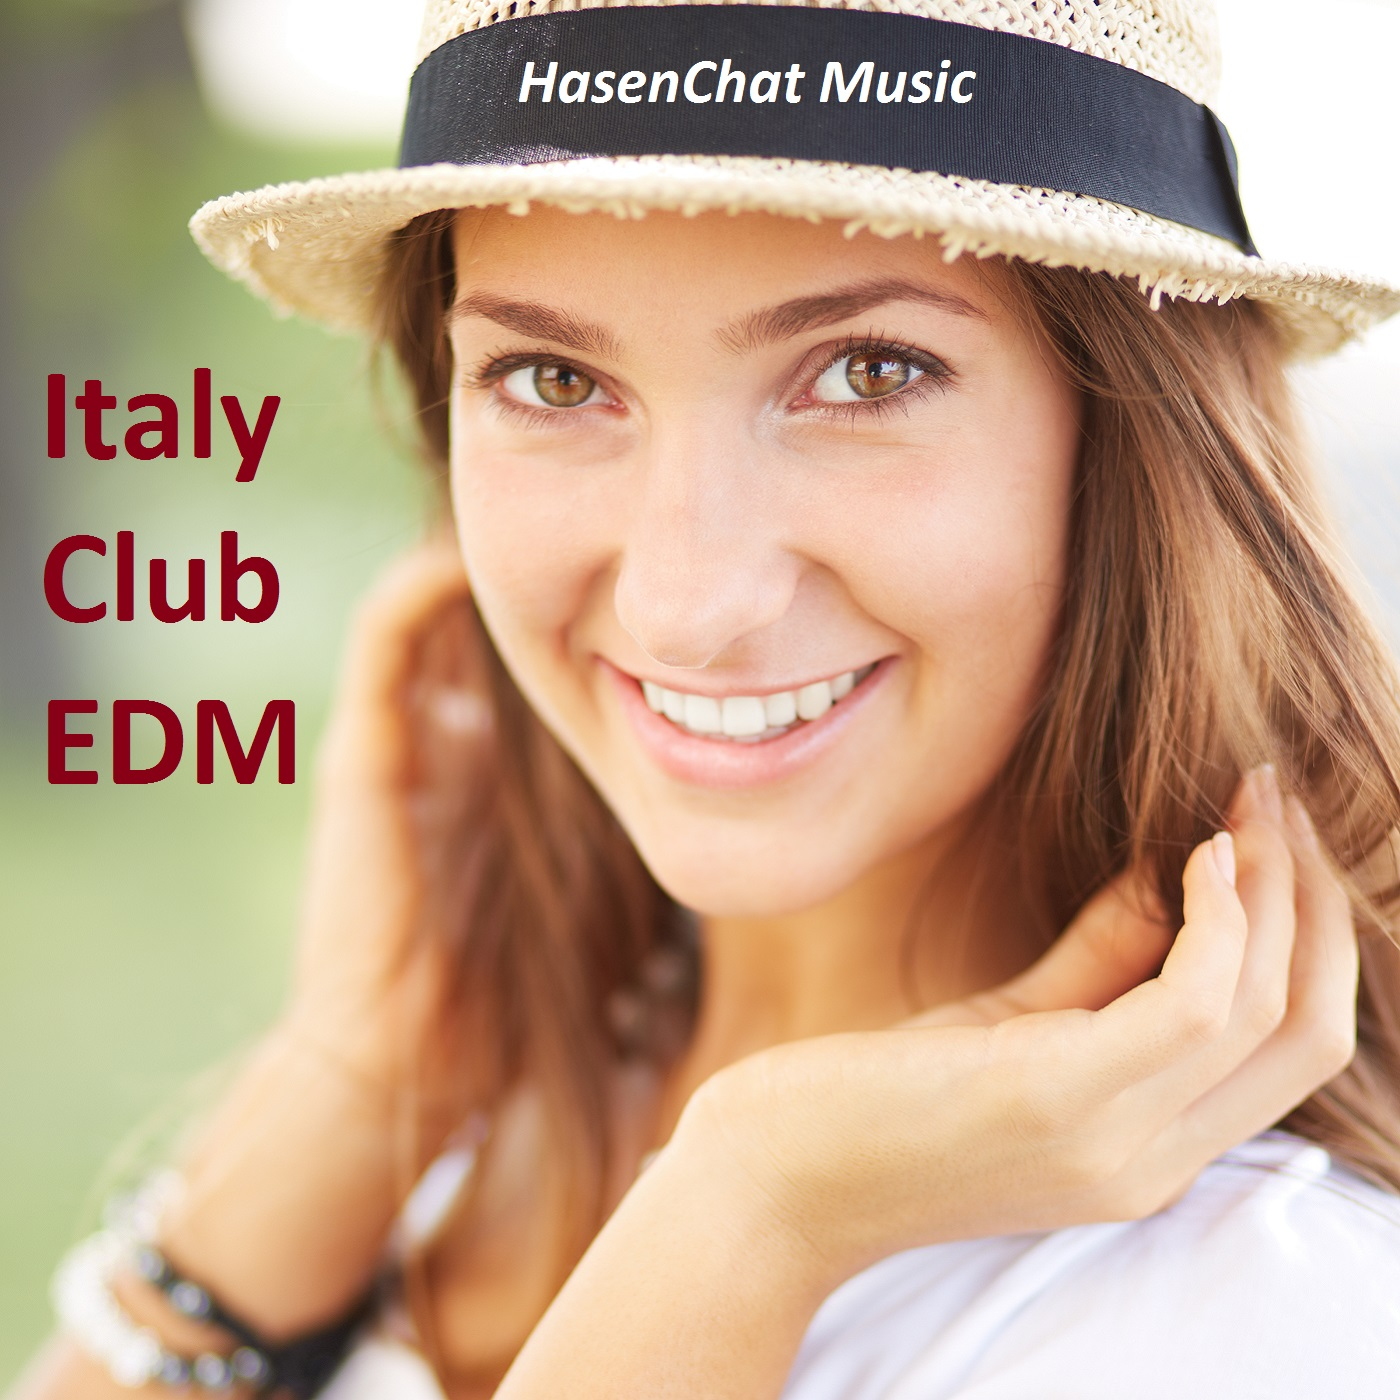 HasenChat Music - Italy Club EDM